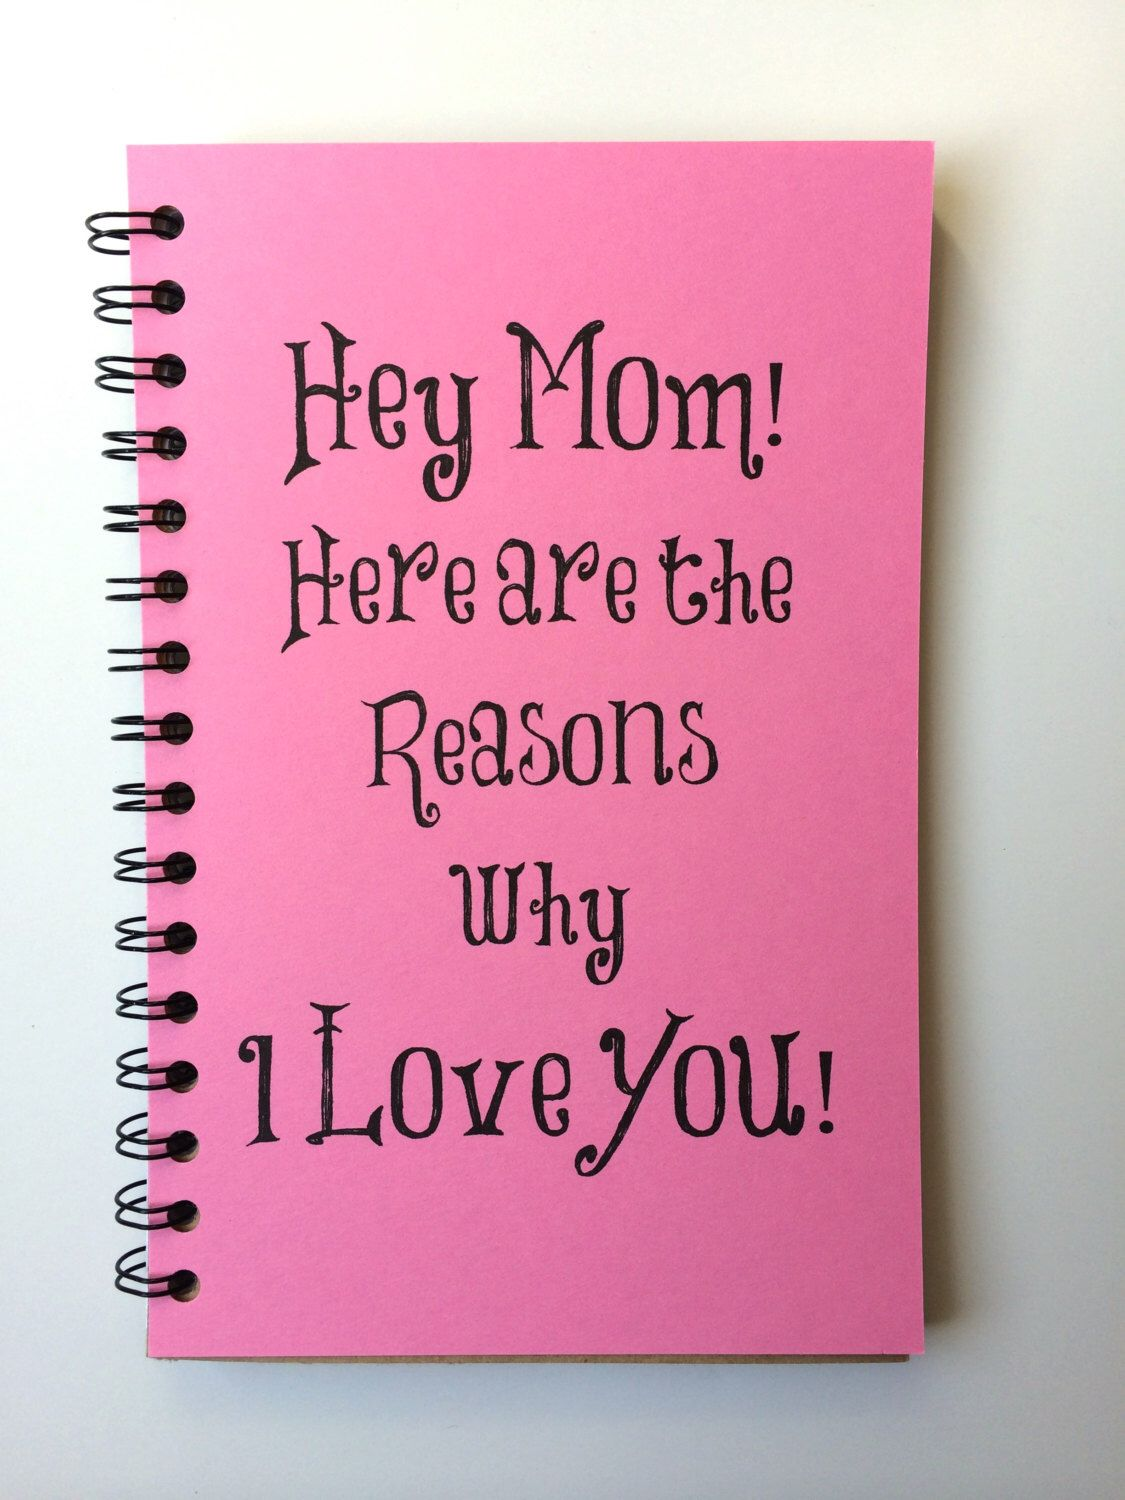 DIY Gift Idea for Mom. Great present for Mother's Day if